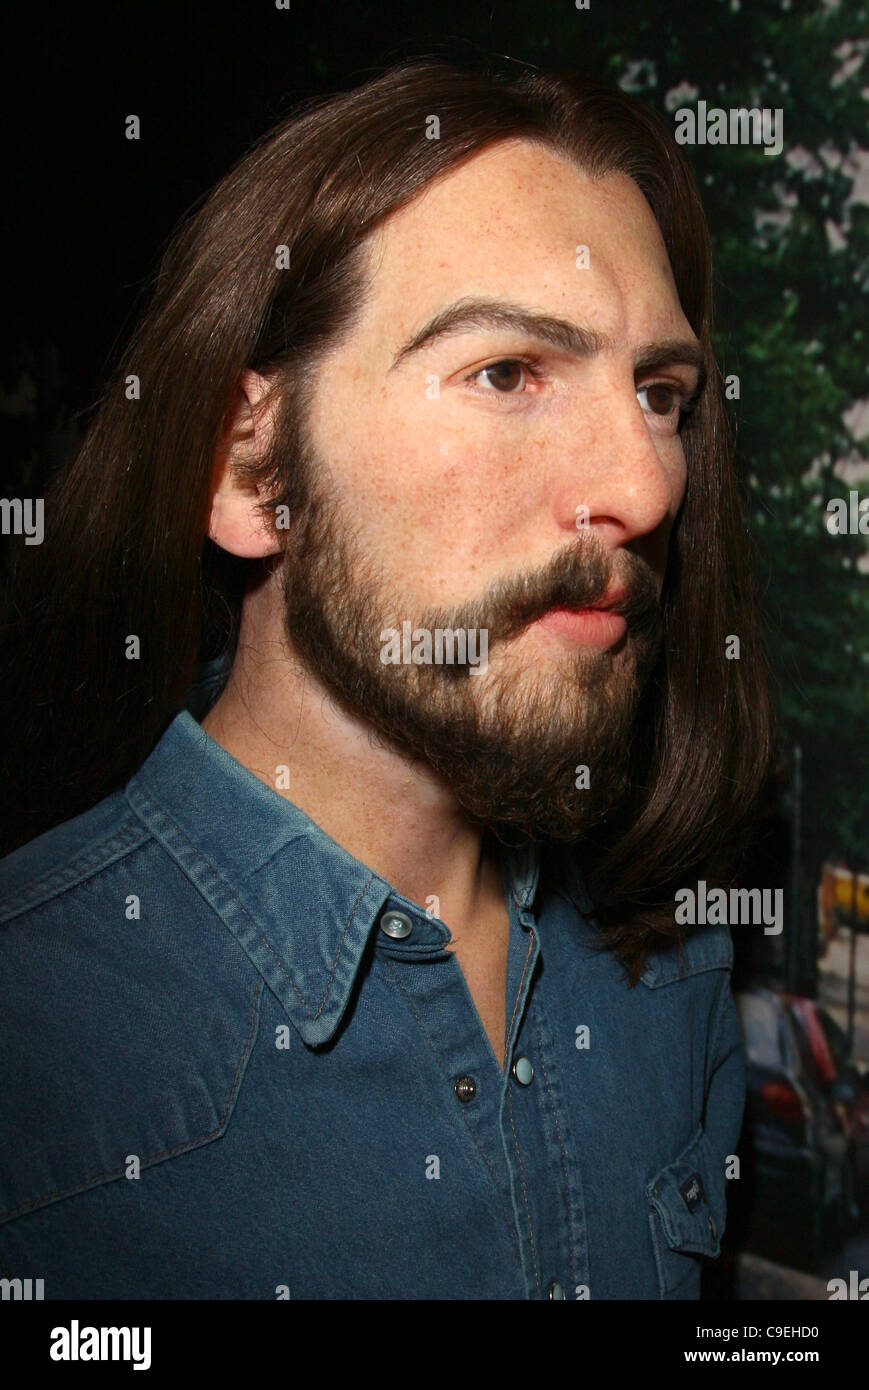 GEORGE HARRISON WAX FIGURE THE BEATLES WAX FIGURES UNVEILING HOLLYWOOD LOS ANGELES CALIFORNIA USA 08 December 2011 - Stock Image